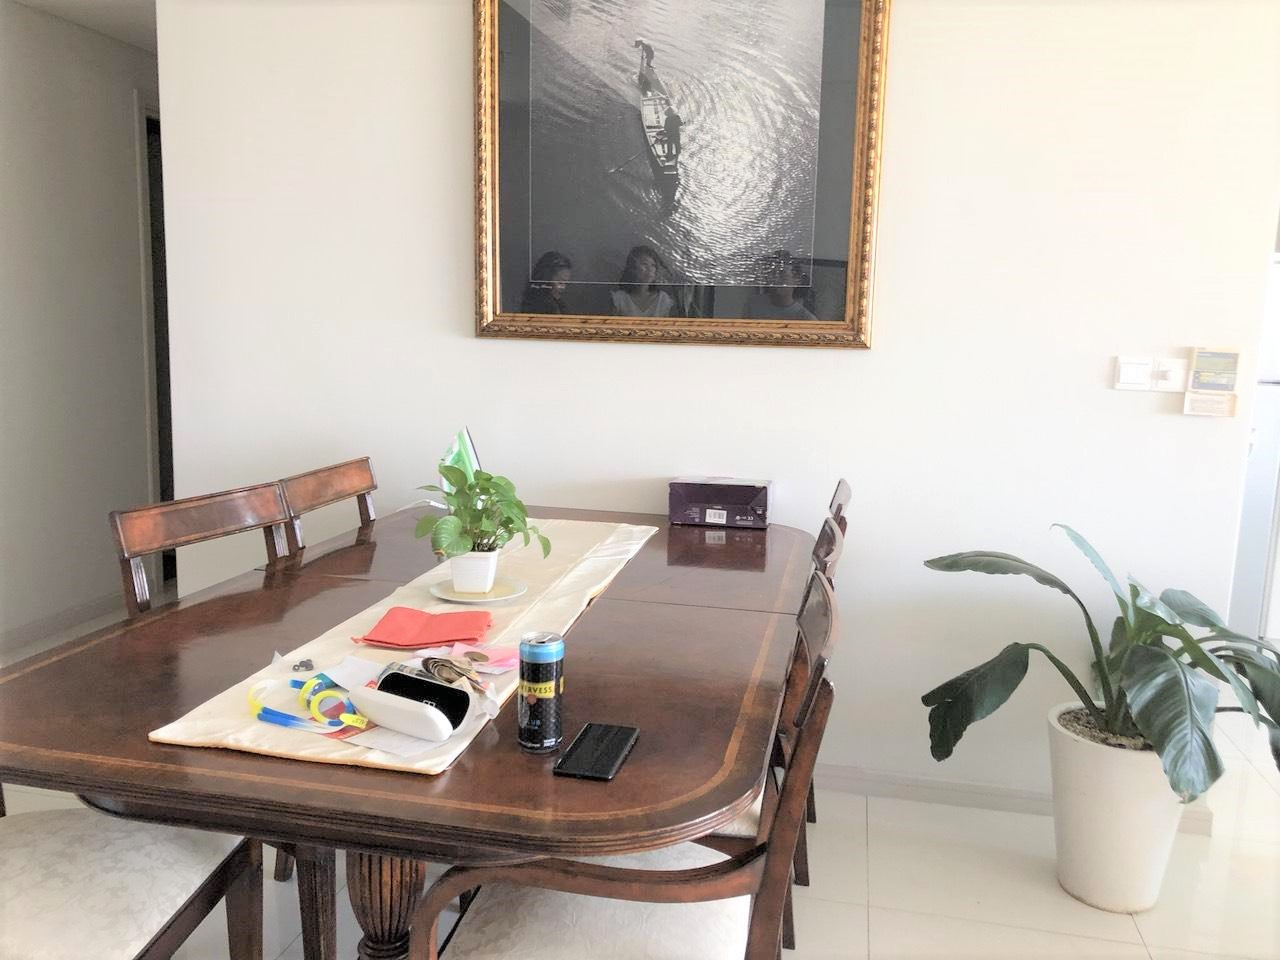 Apartment for rent BT102338 (7)